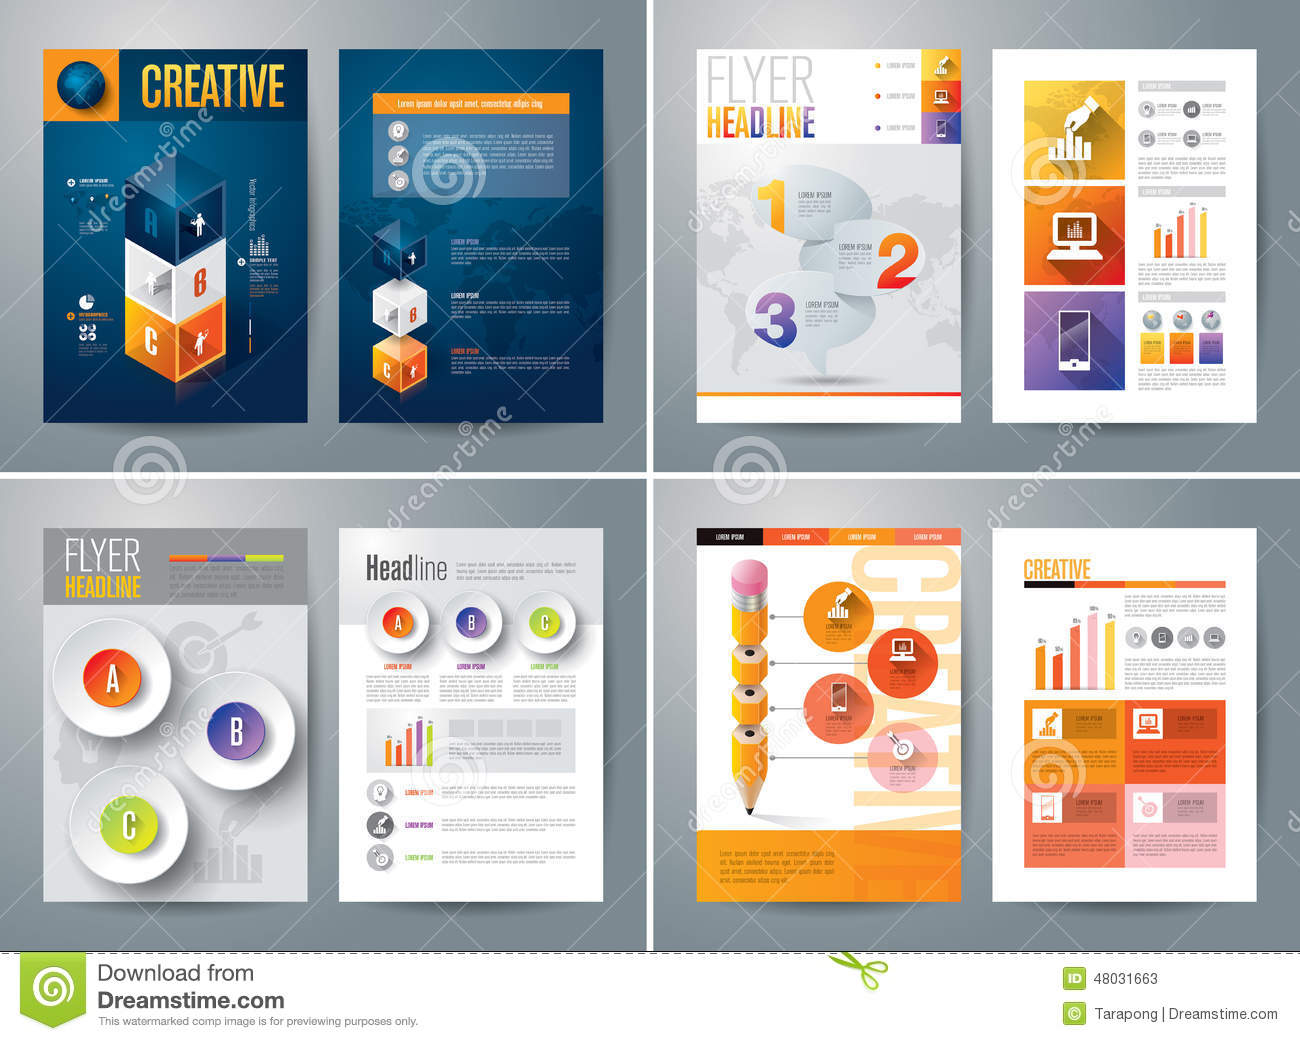 Brochure Templates Online. blank brochure templates free download ...